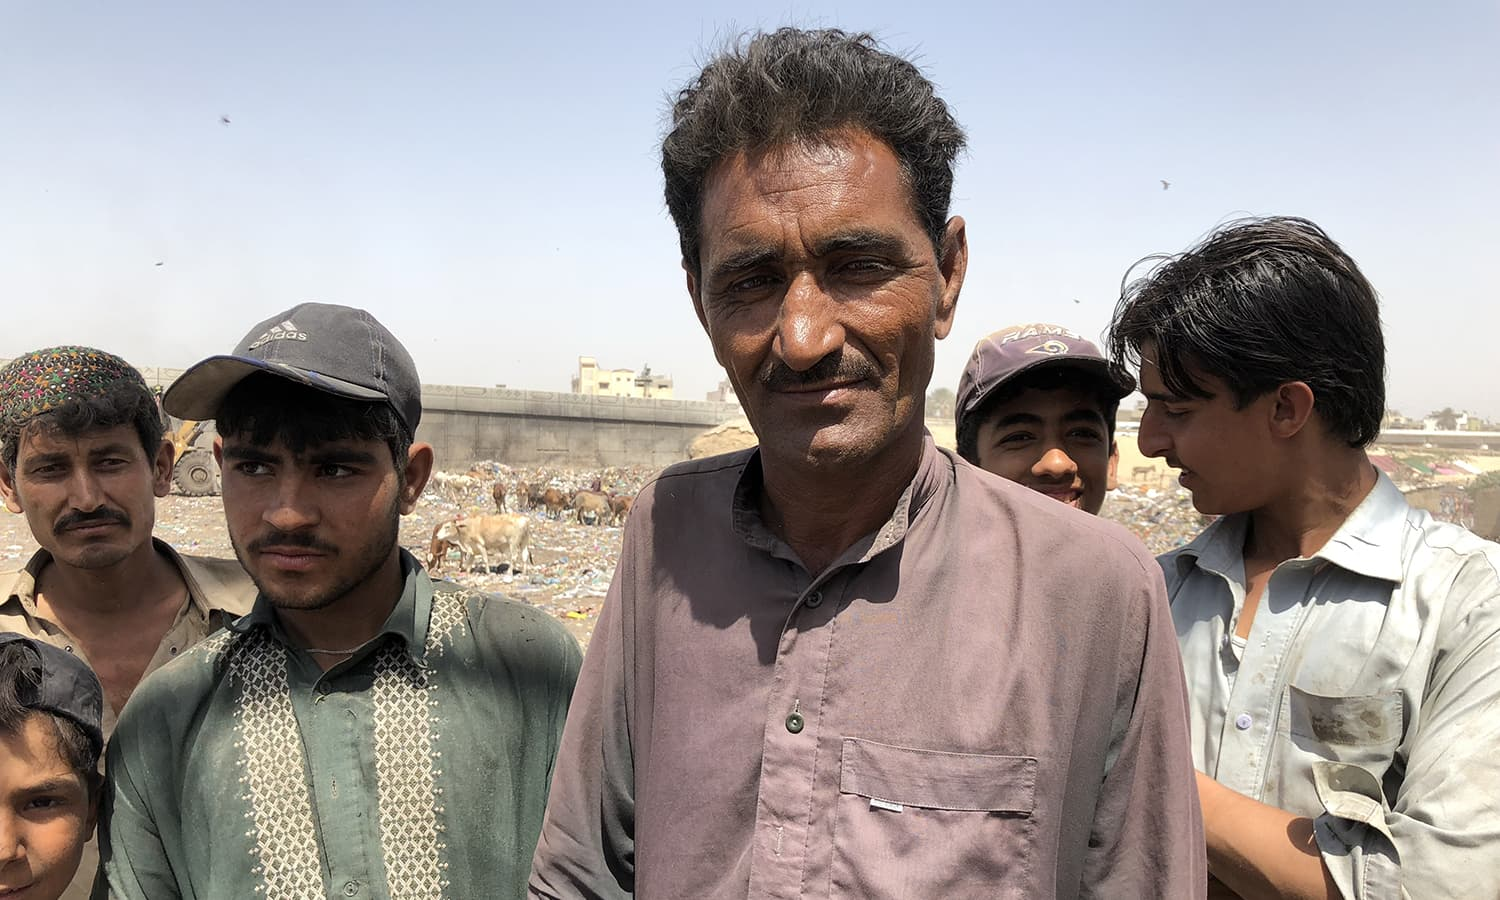 Kala Khan, an Afghan, belongs to Quetta, and says many Afghans are forced to work as scavangers as they cannot any other work. — Photo by author